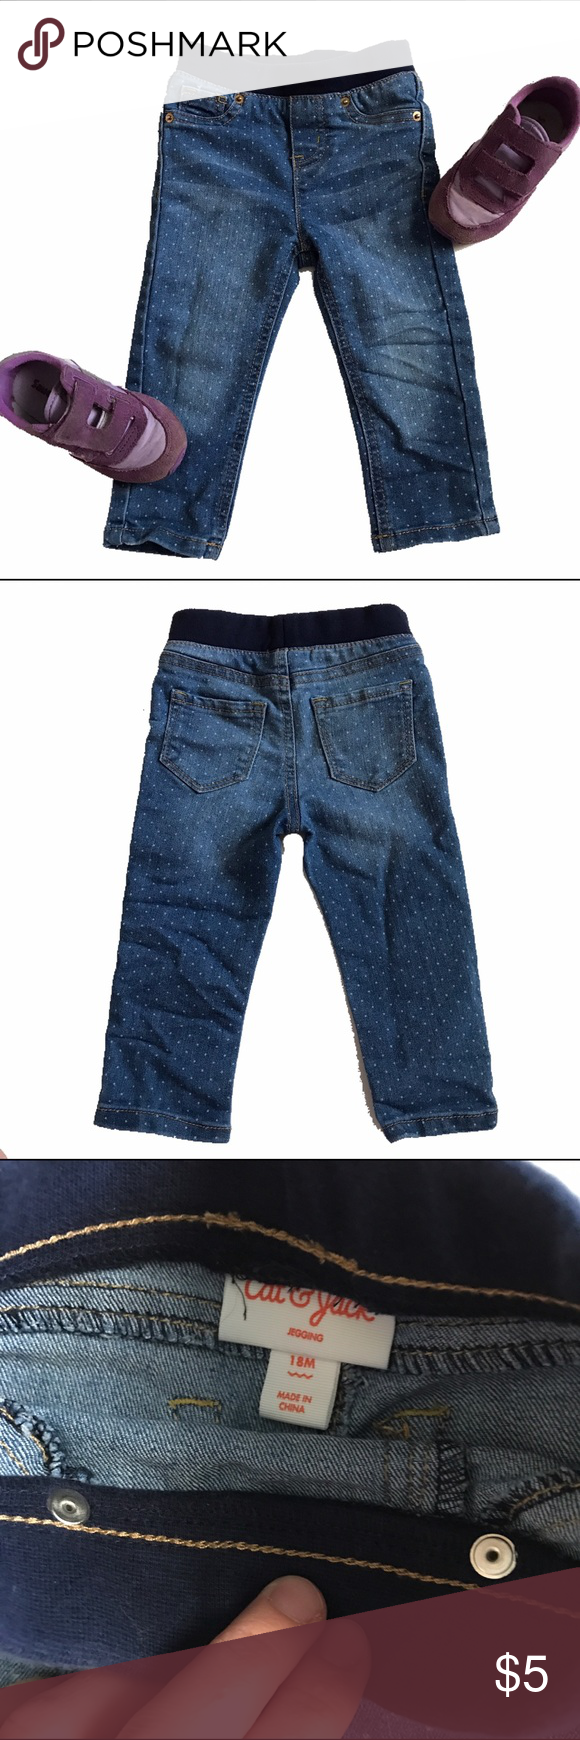 Cat and Jack polka dot denim Elastic waist polka dot blue jeans.  18M.  Runs big.  See photos for inseam measurement.  Worn a couple of times but my daughter is really thin so the waist was too big on her.  EUC.  B3.9 Cat and Jack Bottoms Jeans